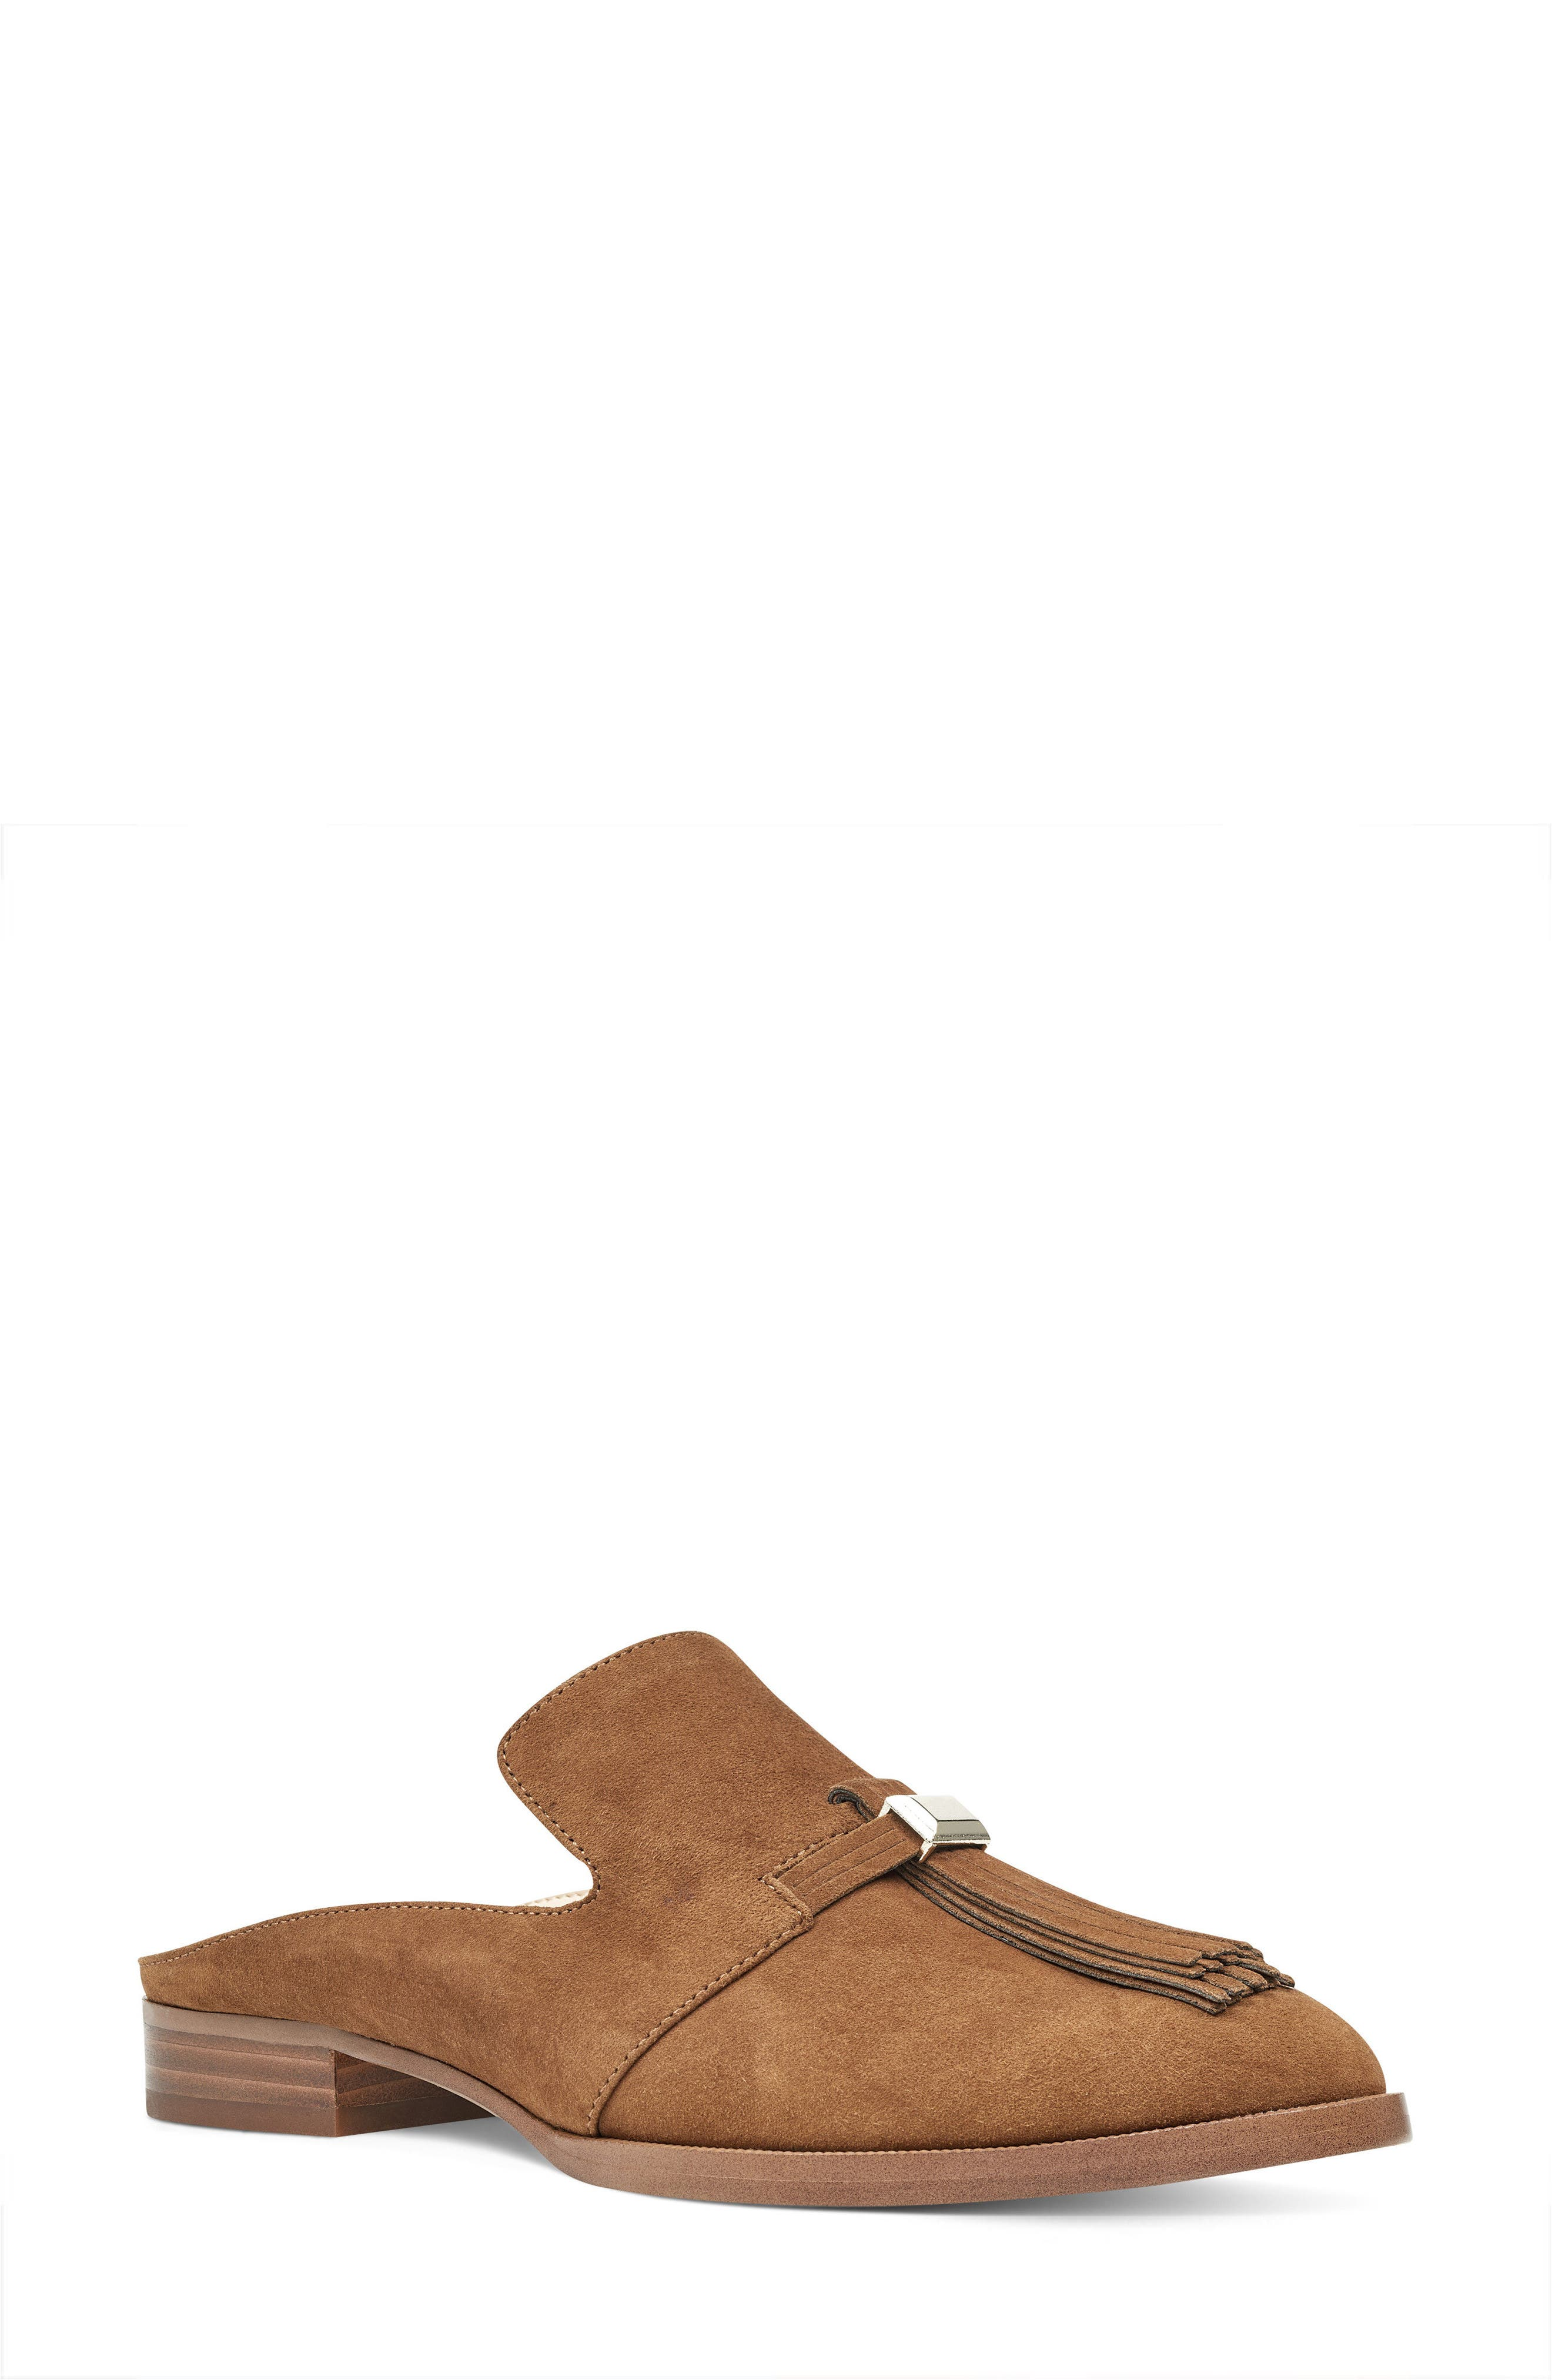 Huebart Loafer Mule,                             Main thumbnail 1, color,                             Brown Suede